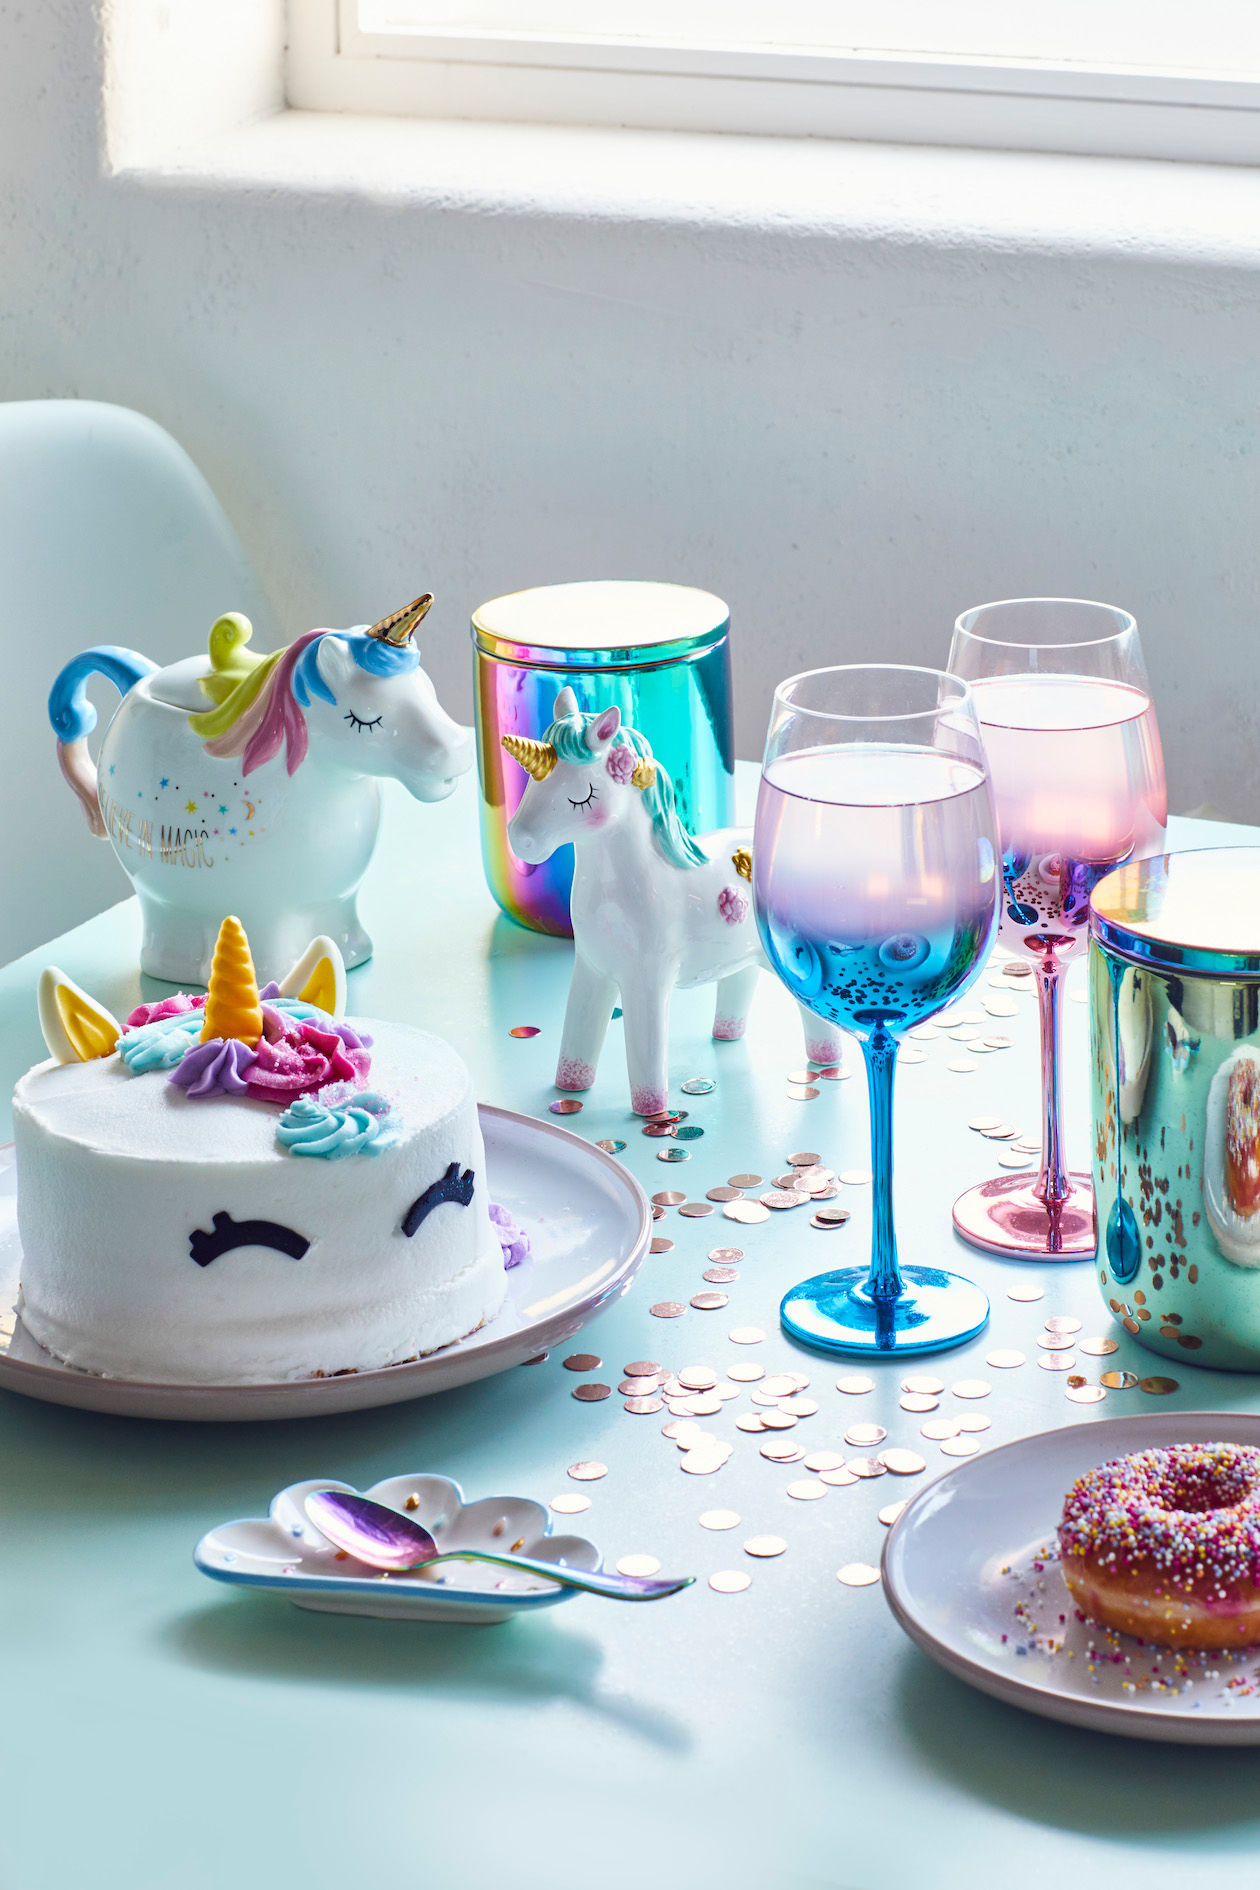 All the unicorn products you could ever need